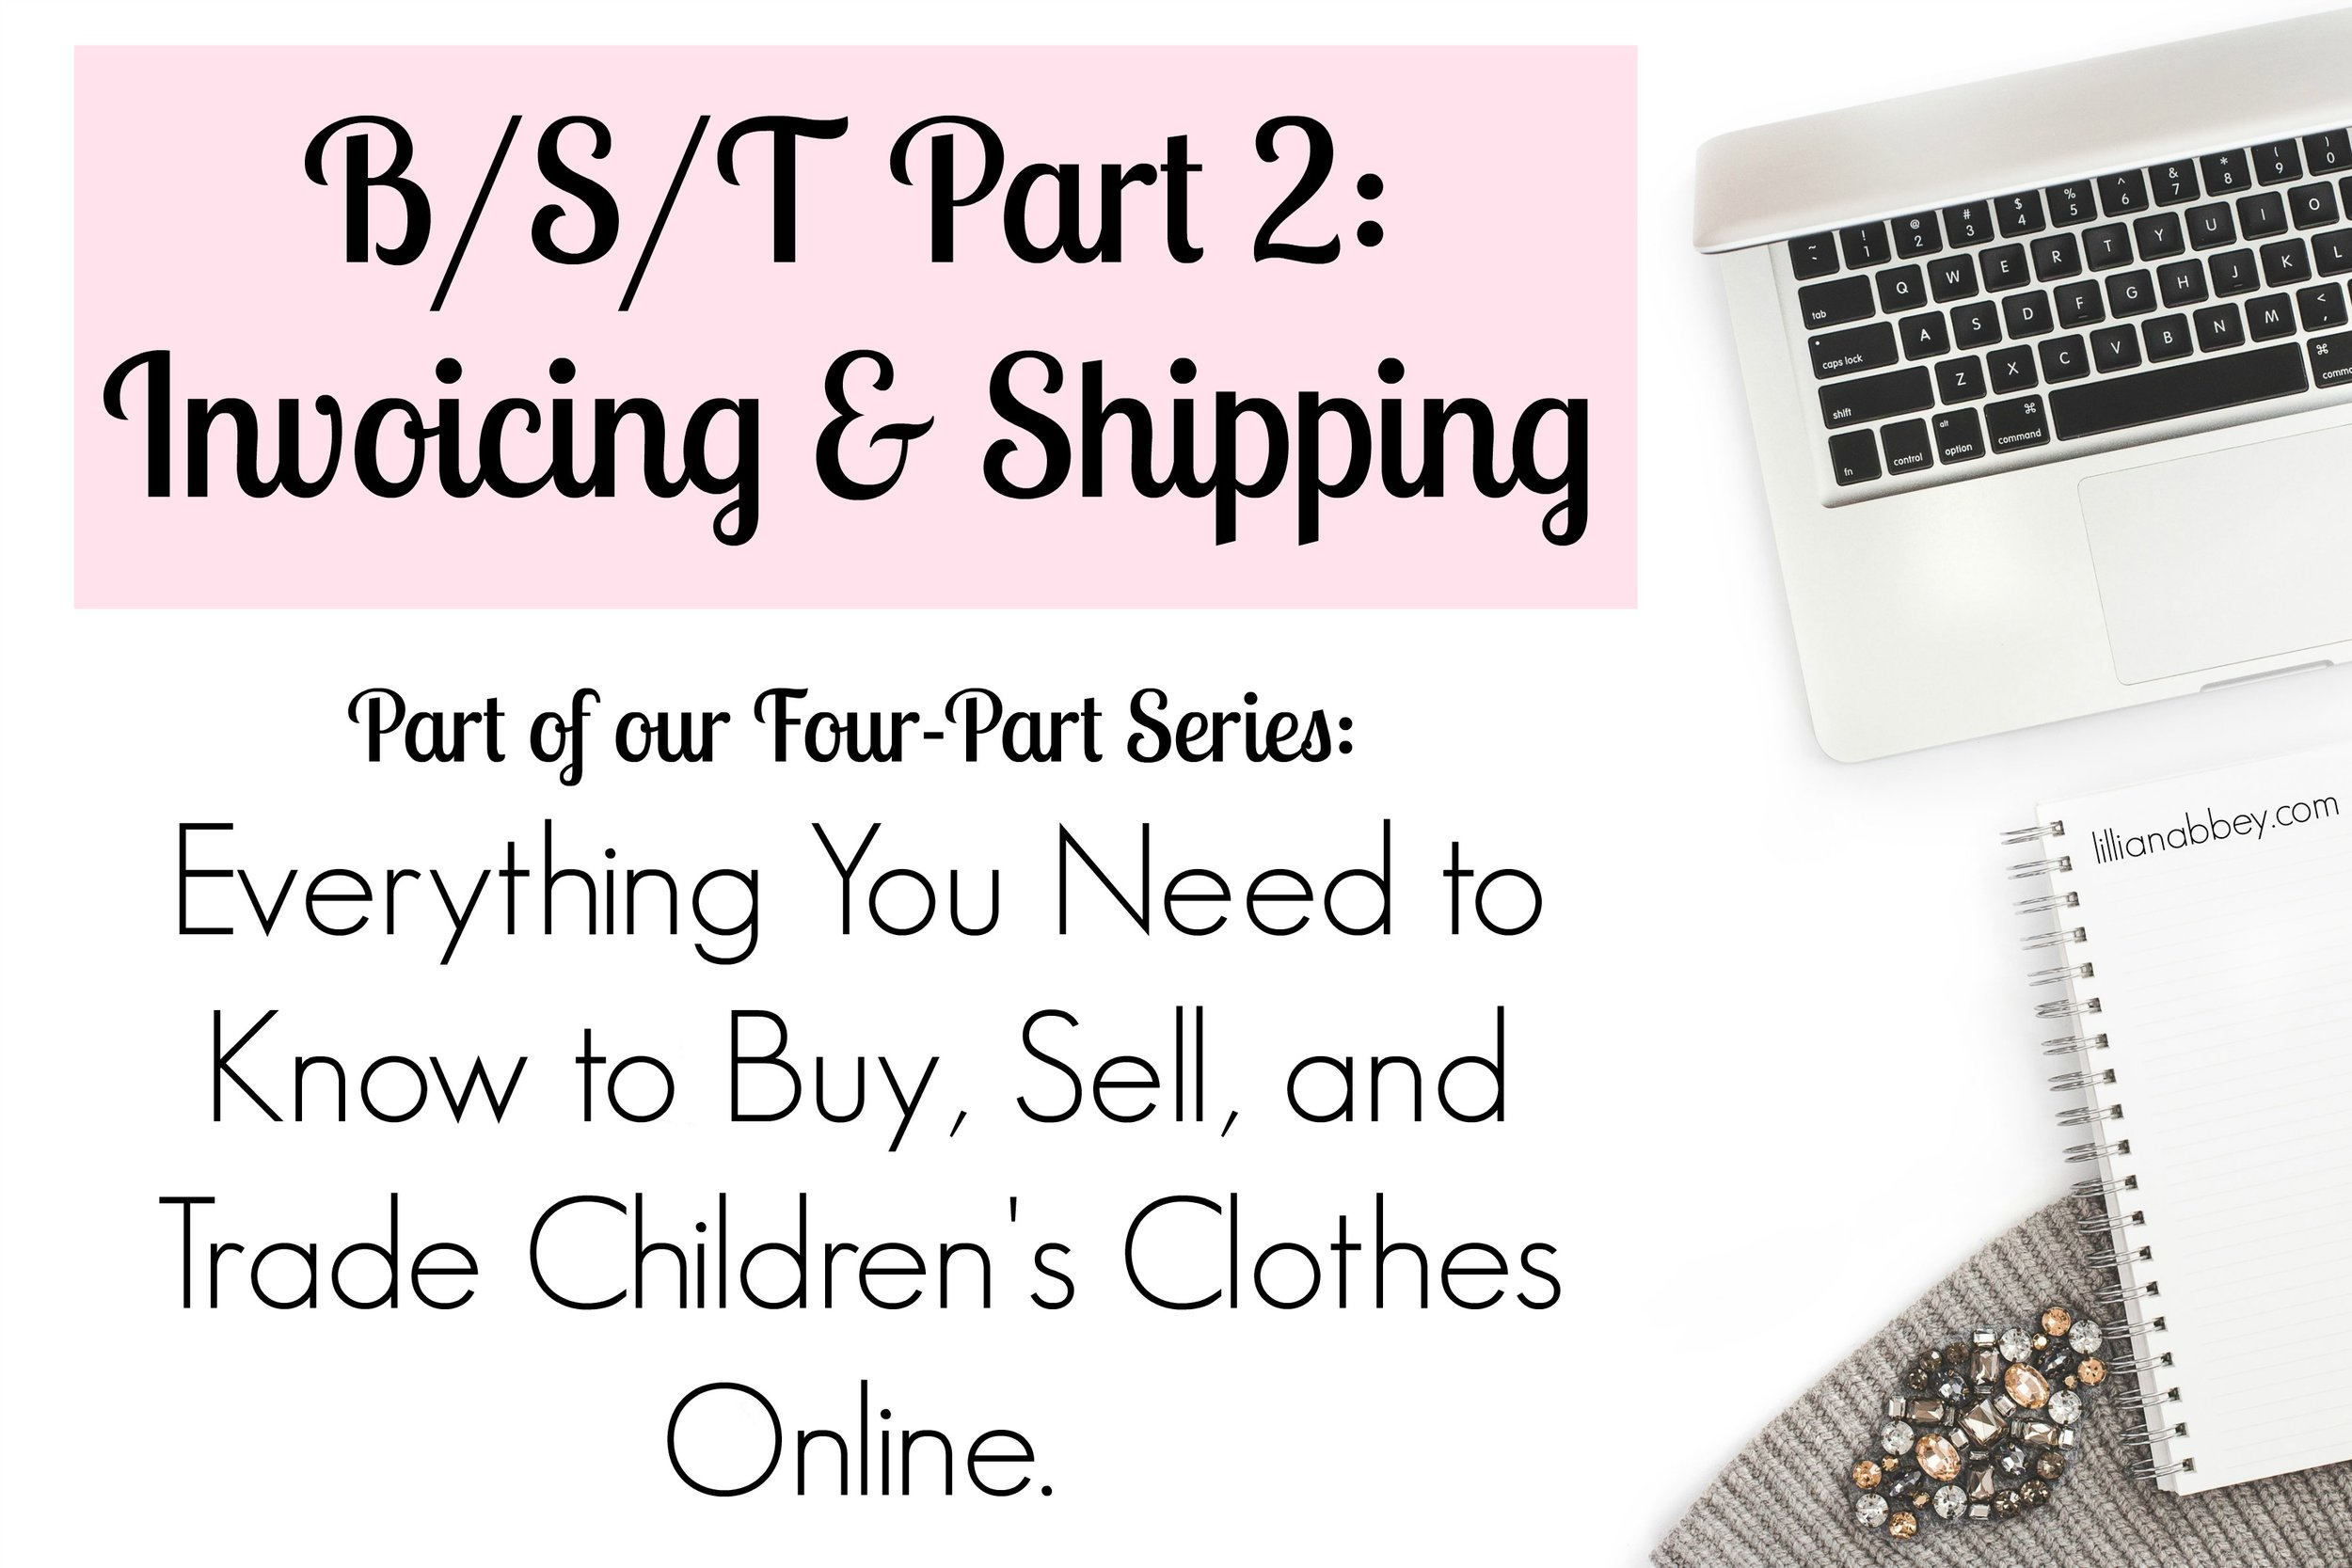 B/S/T Part 2: Invoicing and Shipping